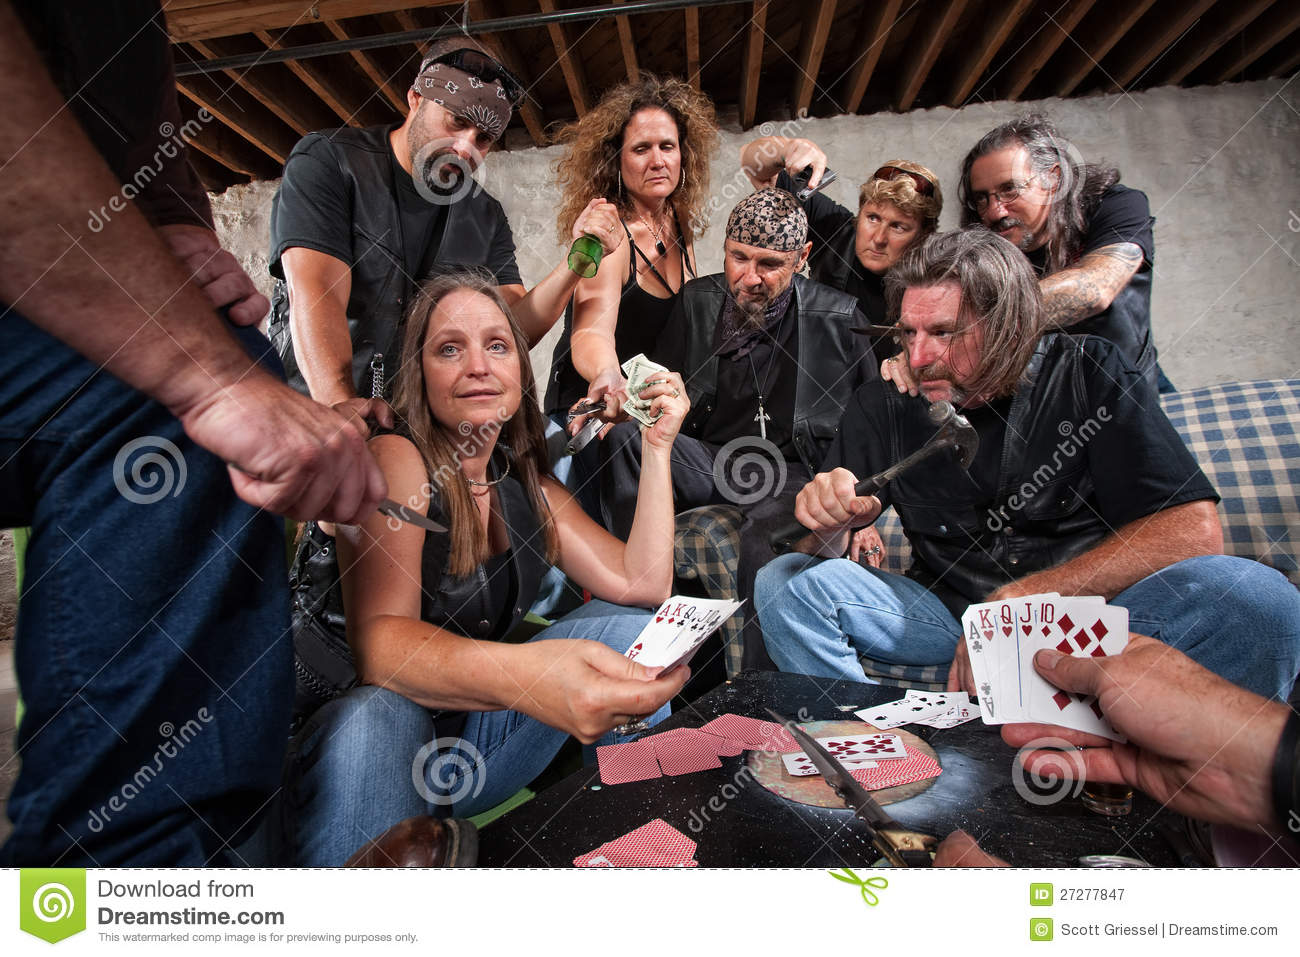 Biker gang lady shows winning hand royalty free stock photography image 27277847 - Gang gang ...